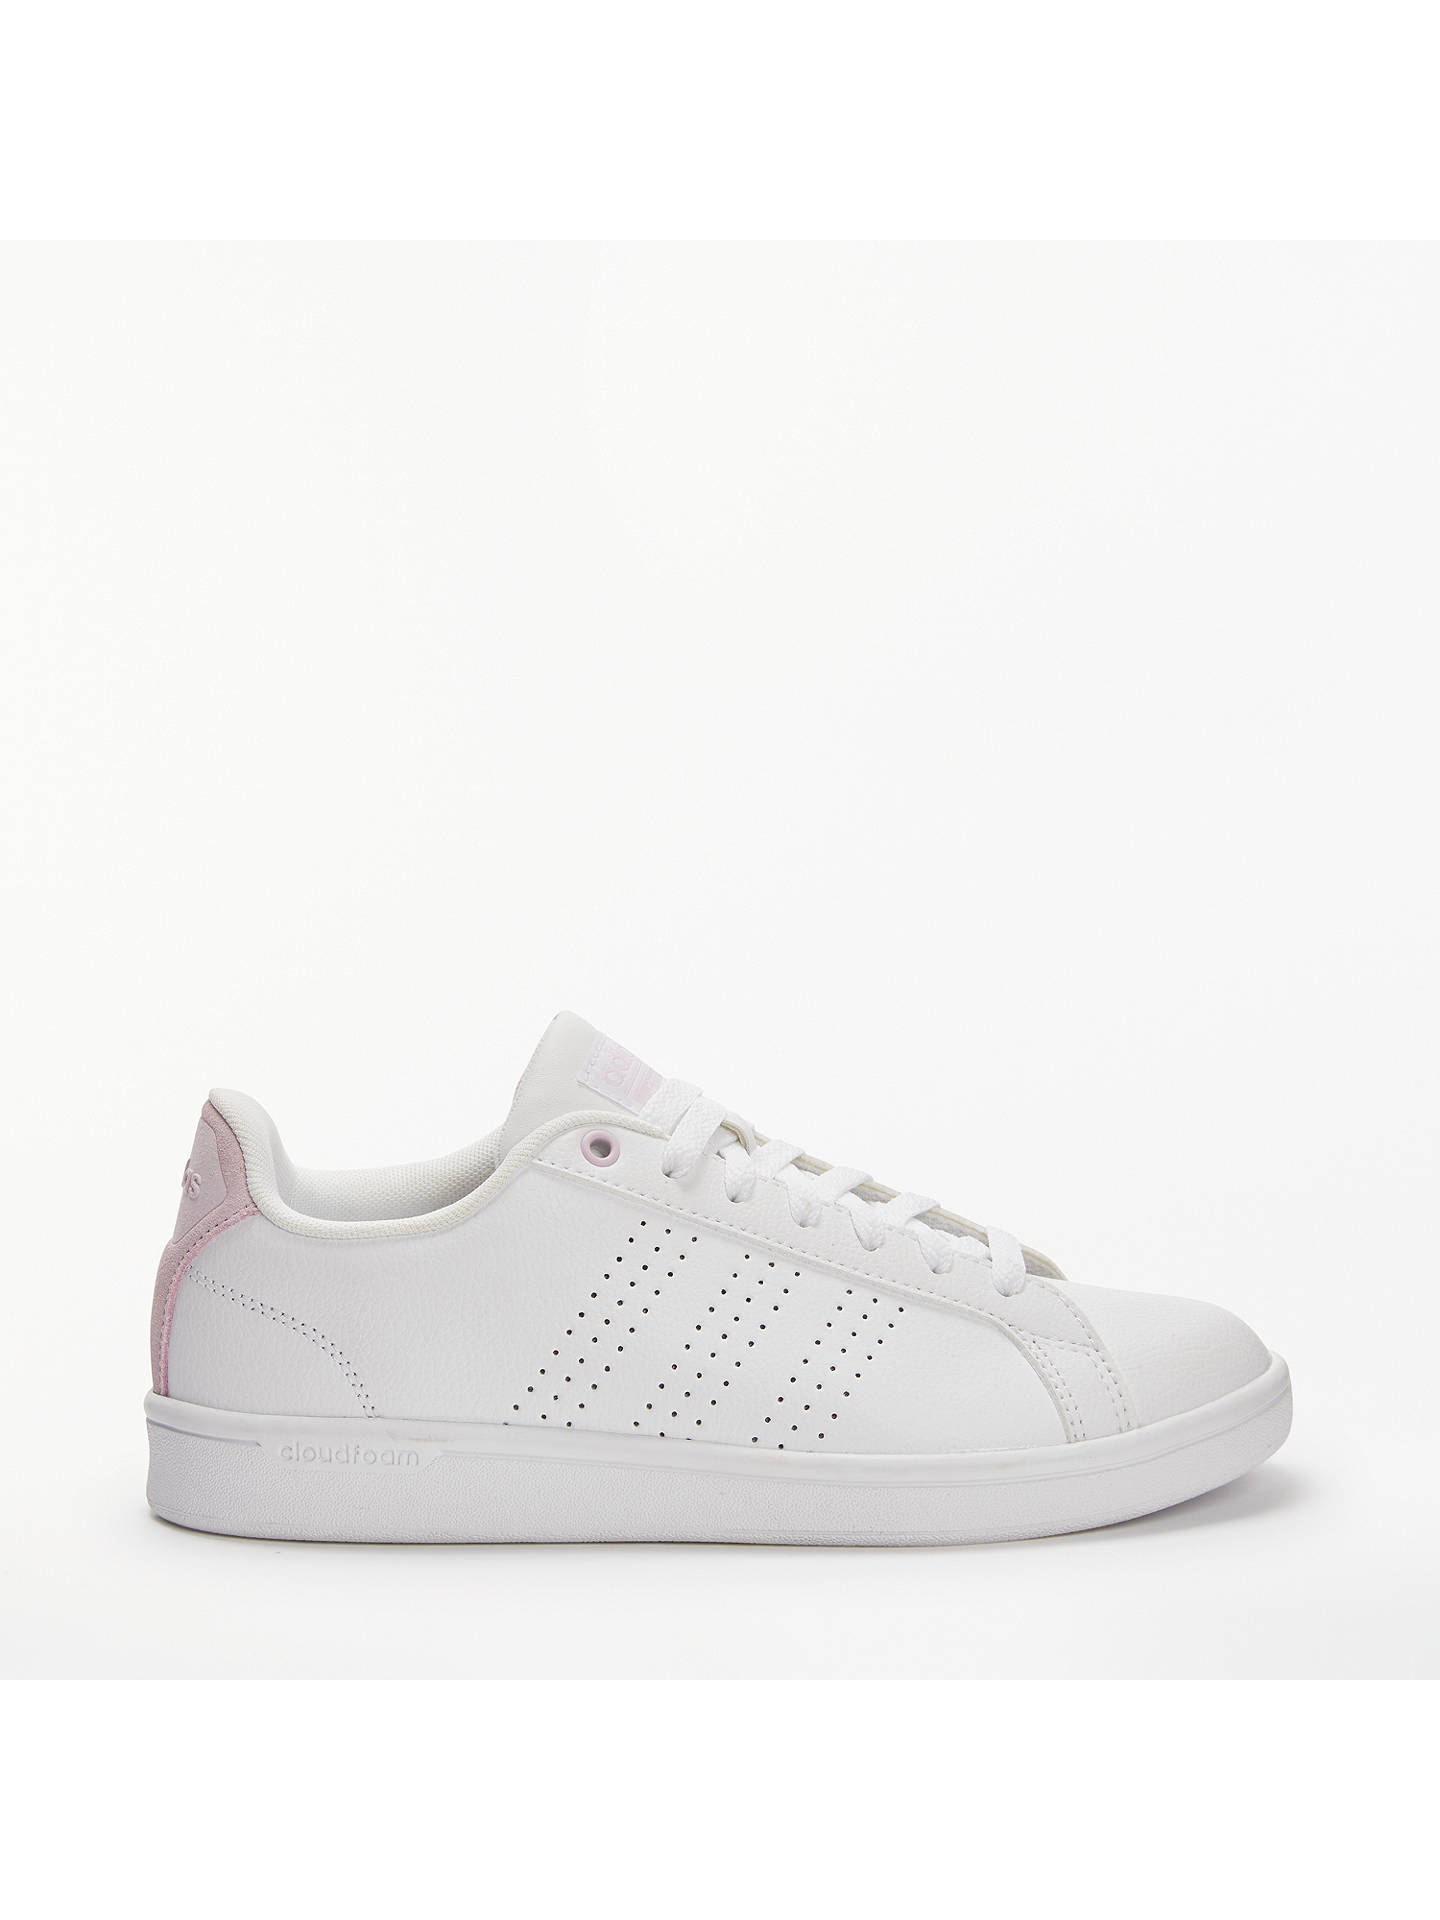 online store 0c67a 35155 Buy adidas Neo Cloudfoam Advantage Women s Trainers, White Pink, 4 Online  at johnlewis ...